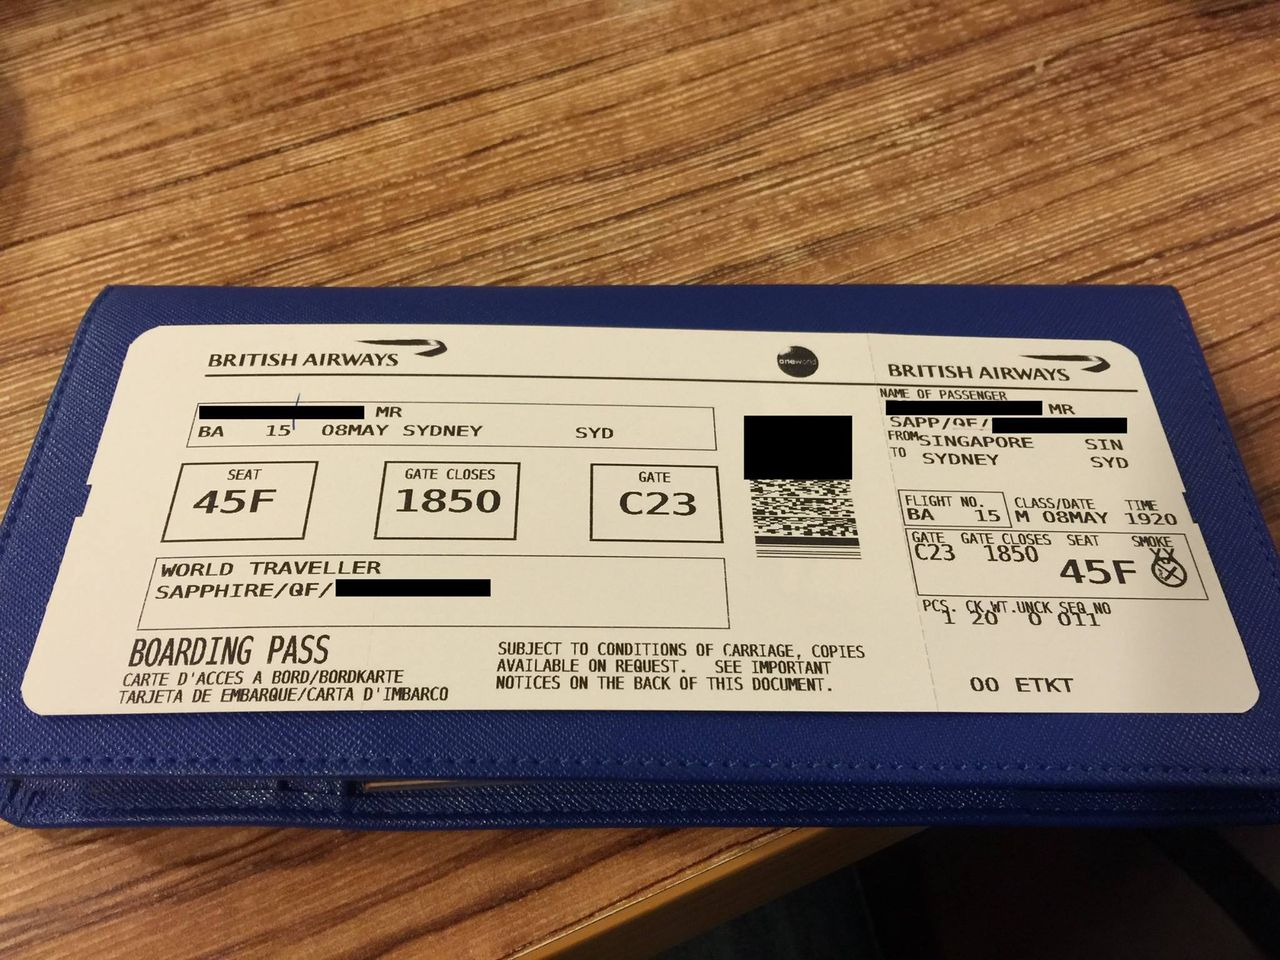 Review of British Airways flight from Singapore to Sydney in Economy